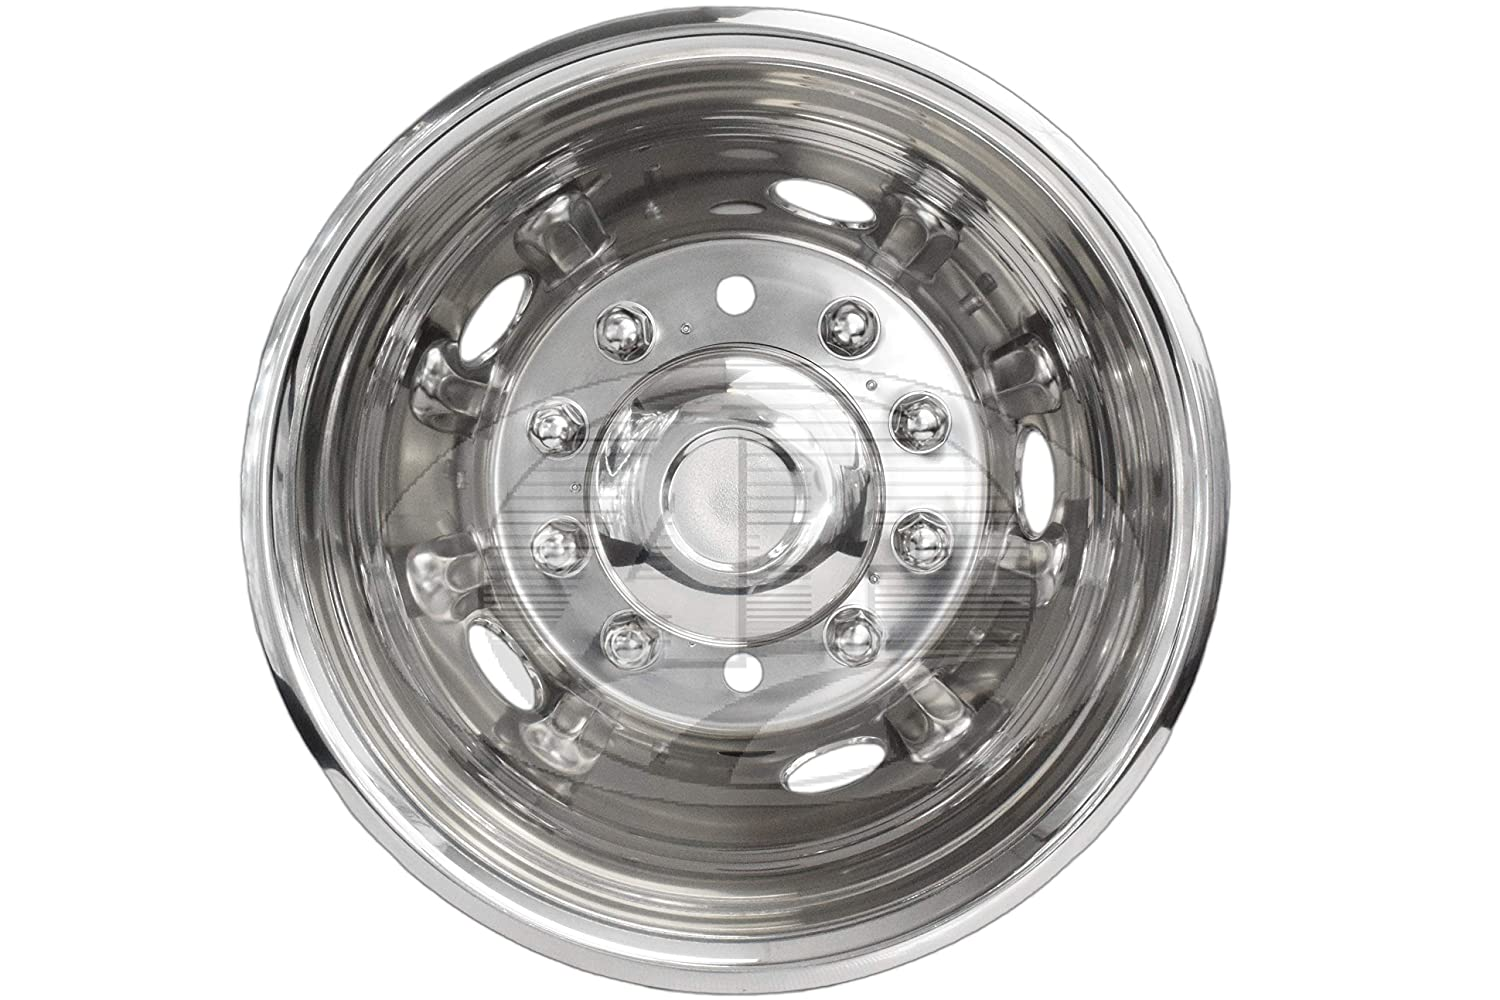 A 19.5 Stainless Steel Wheel Simulator for Dodge 4500//5500 2011-Current Bolt-on